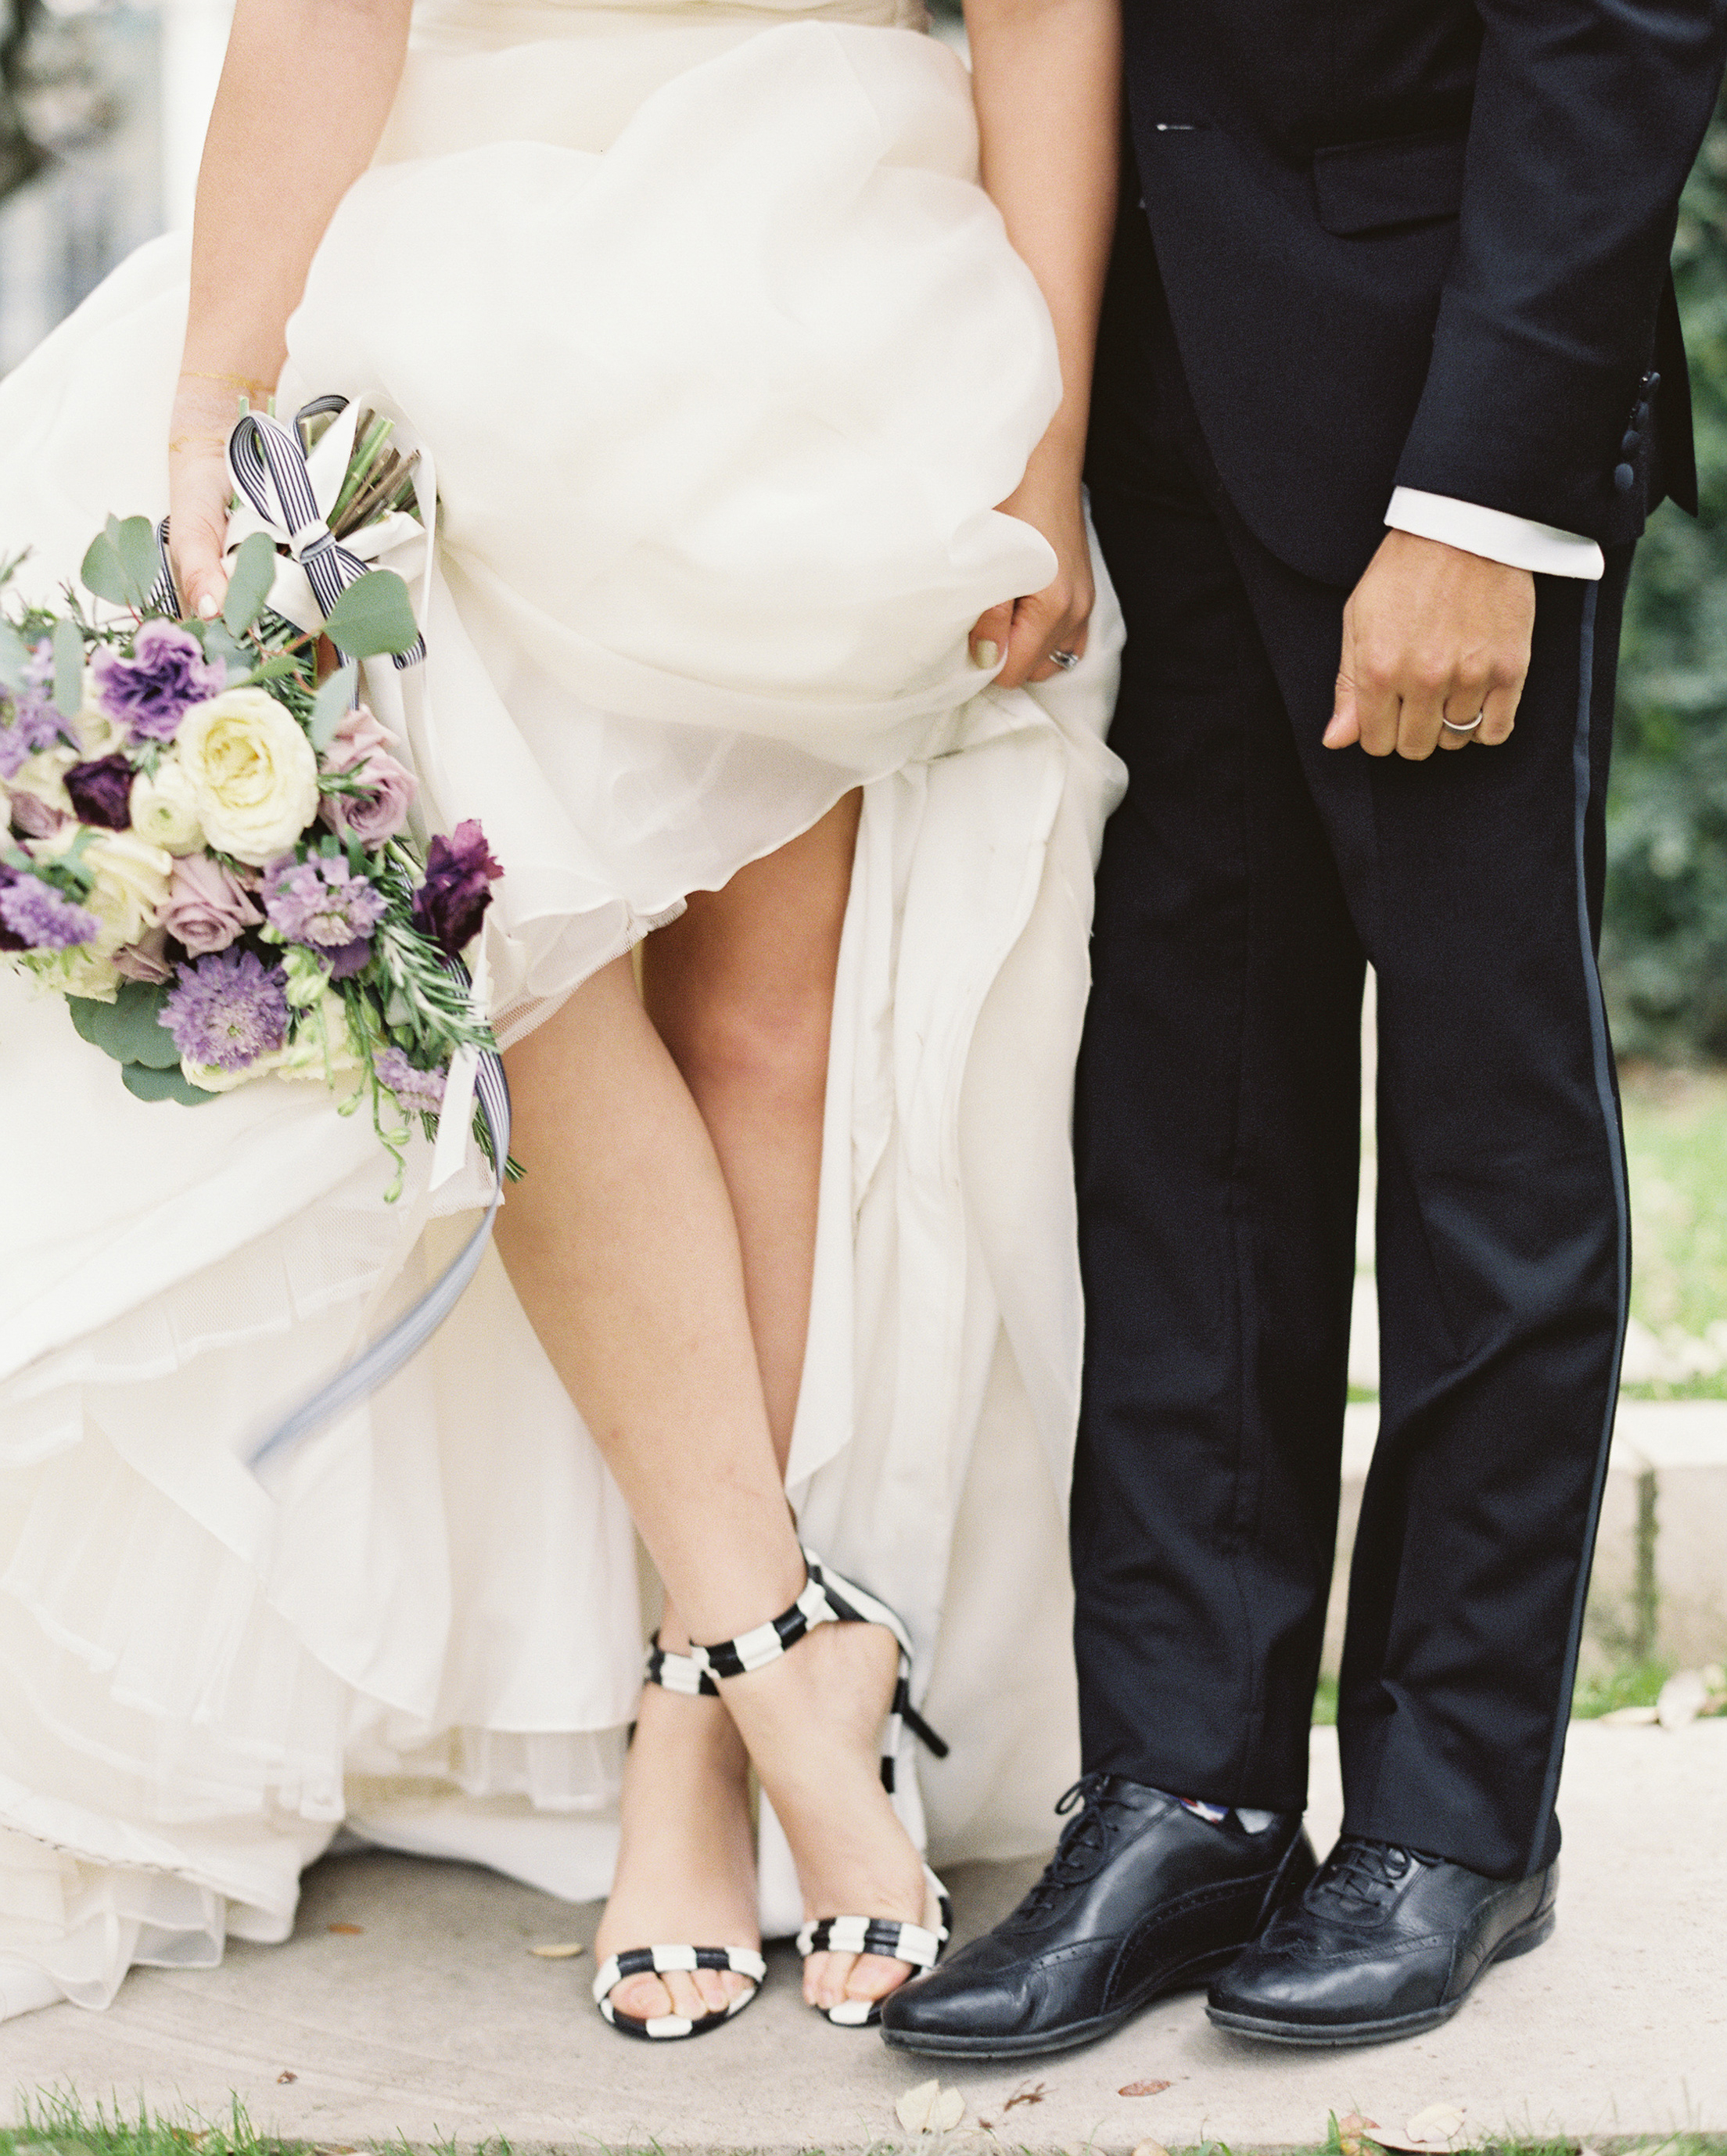 stacey-adam-wedding-shoes-0045-s112112-0815.jpg